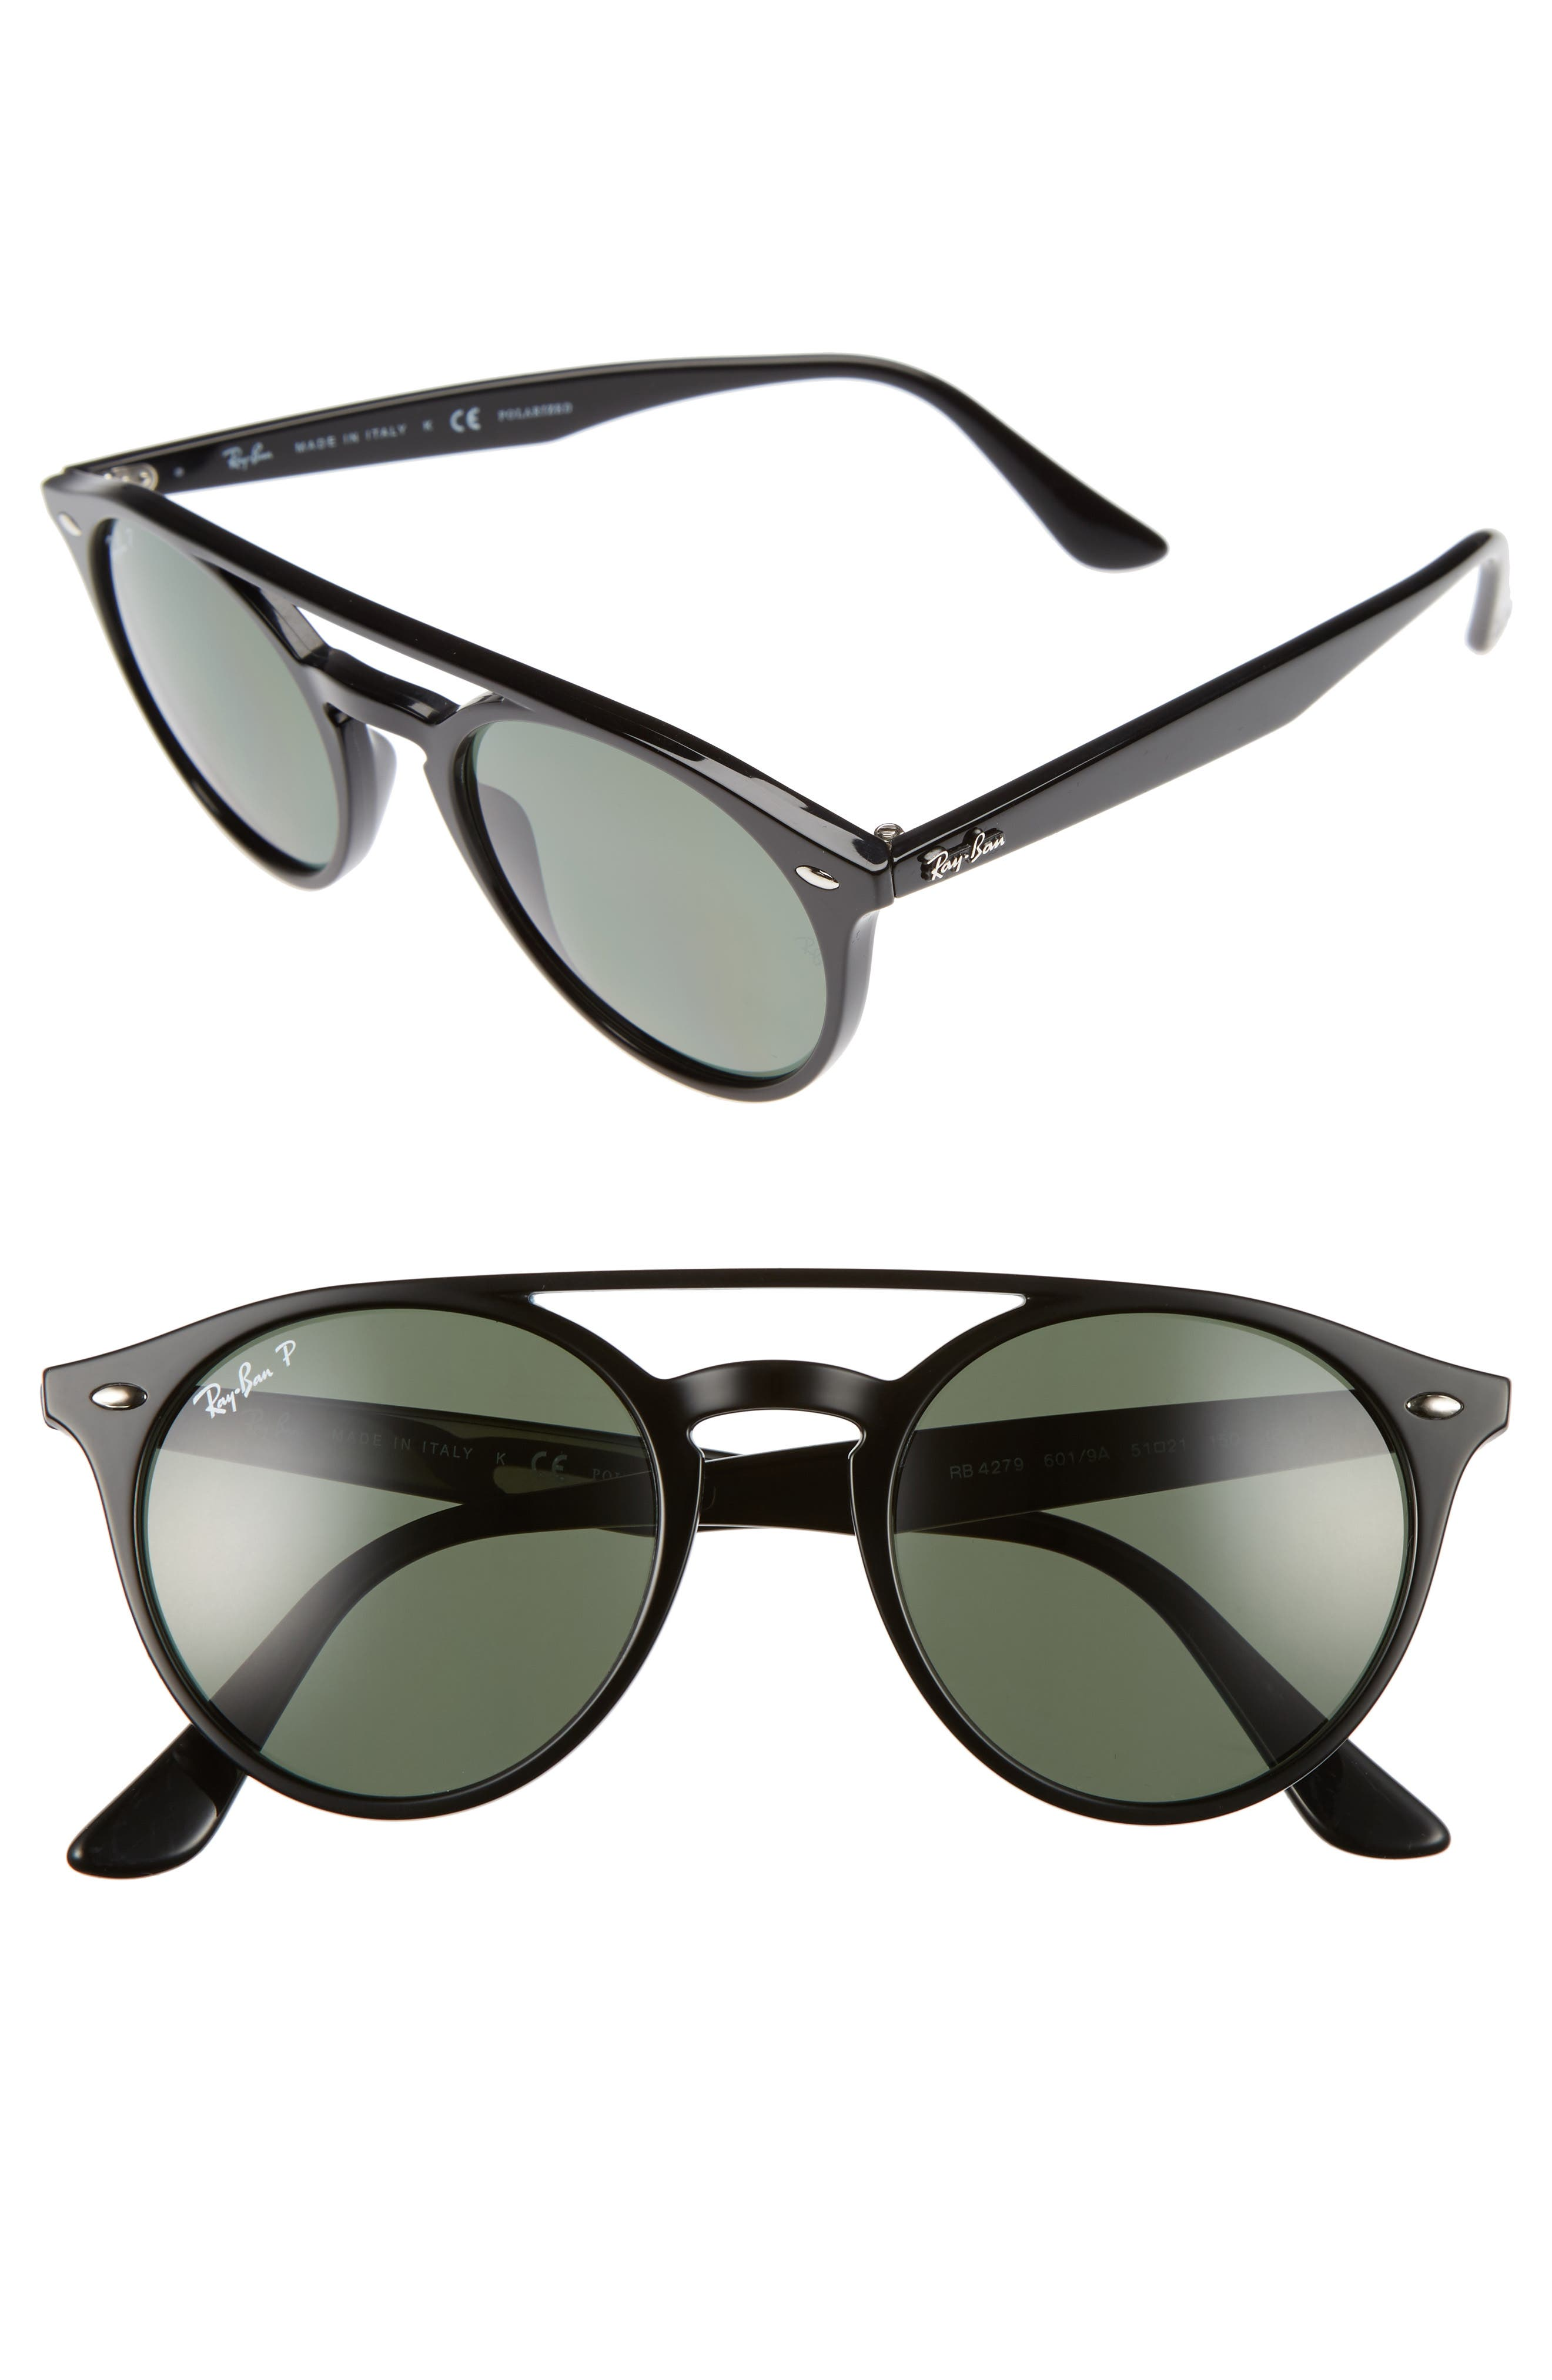 51mm Polarized Round Sunglasses,                             Main thumbnail 1, color,                             001